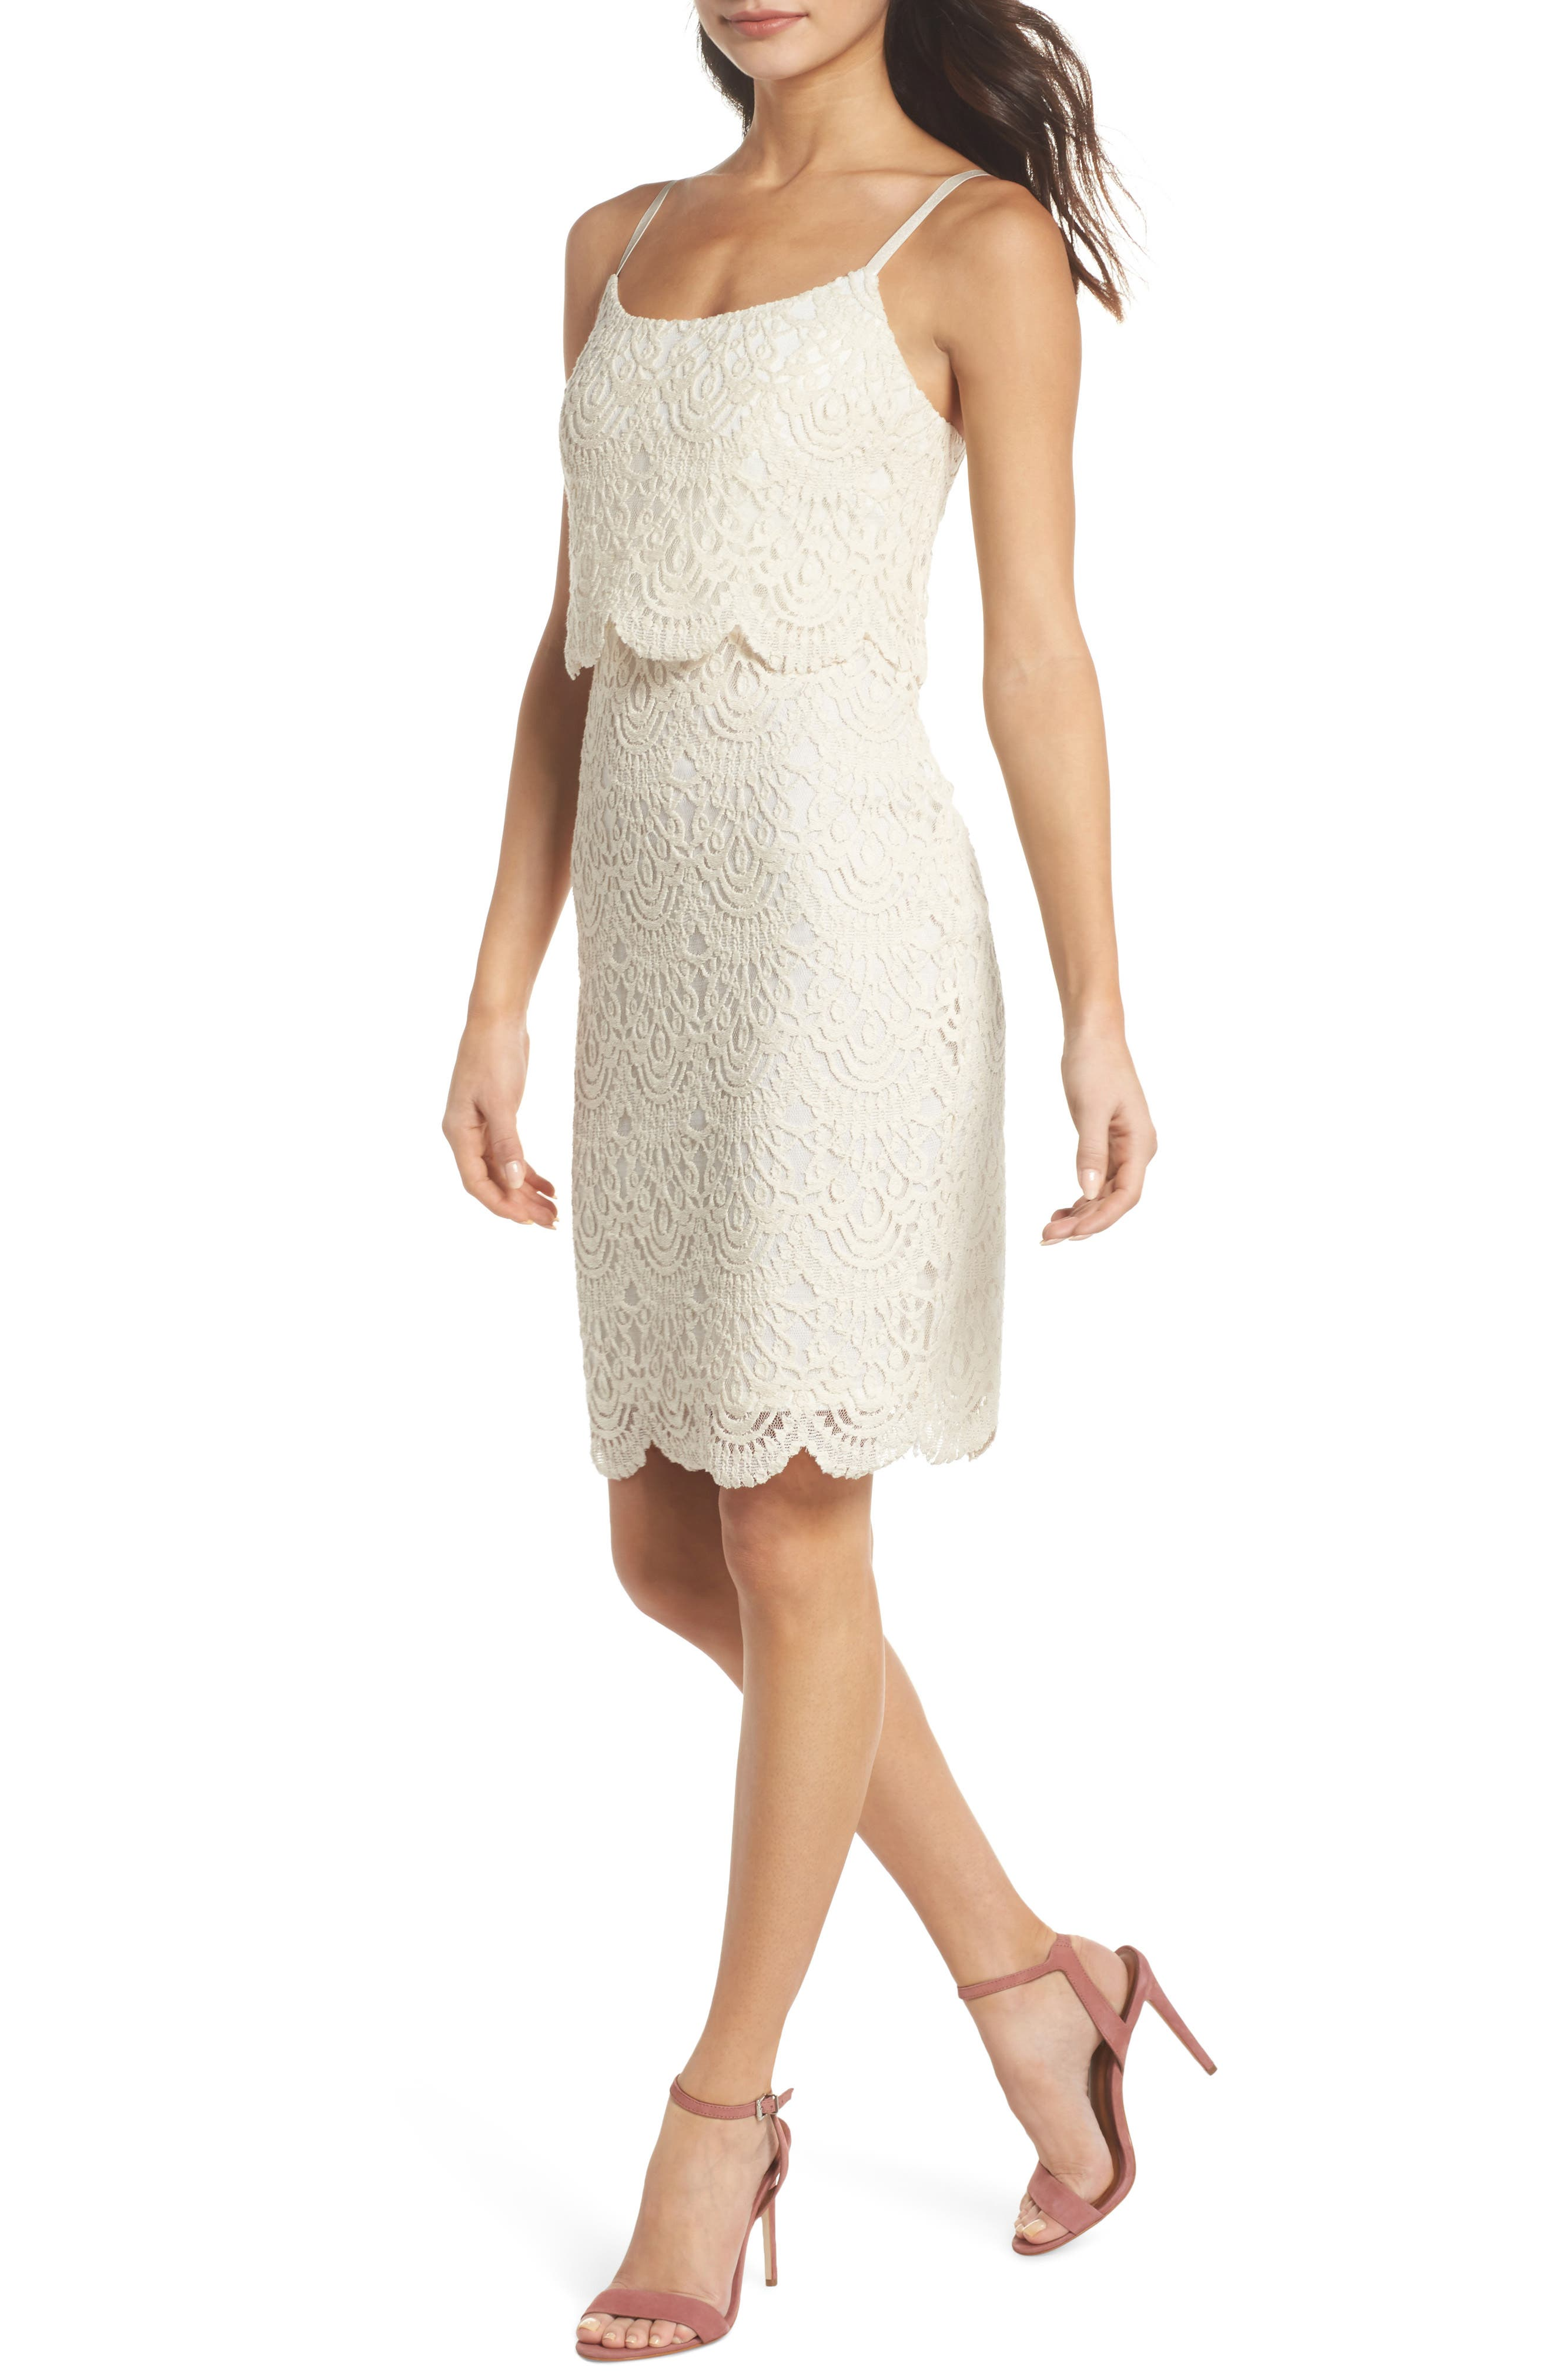 Barnsdall Afternoon Tiered Lace Dress,                         Main,                         color, 900